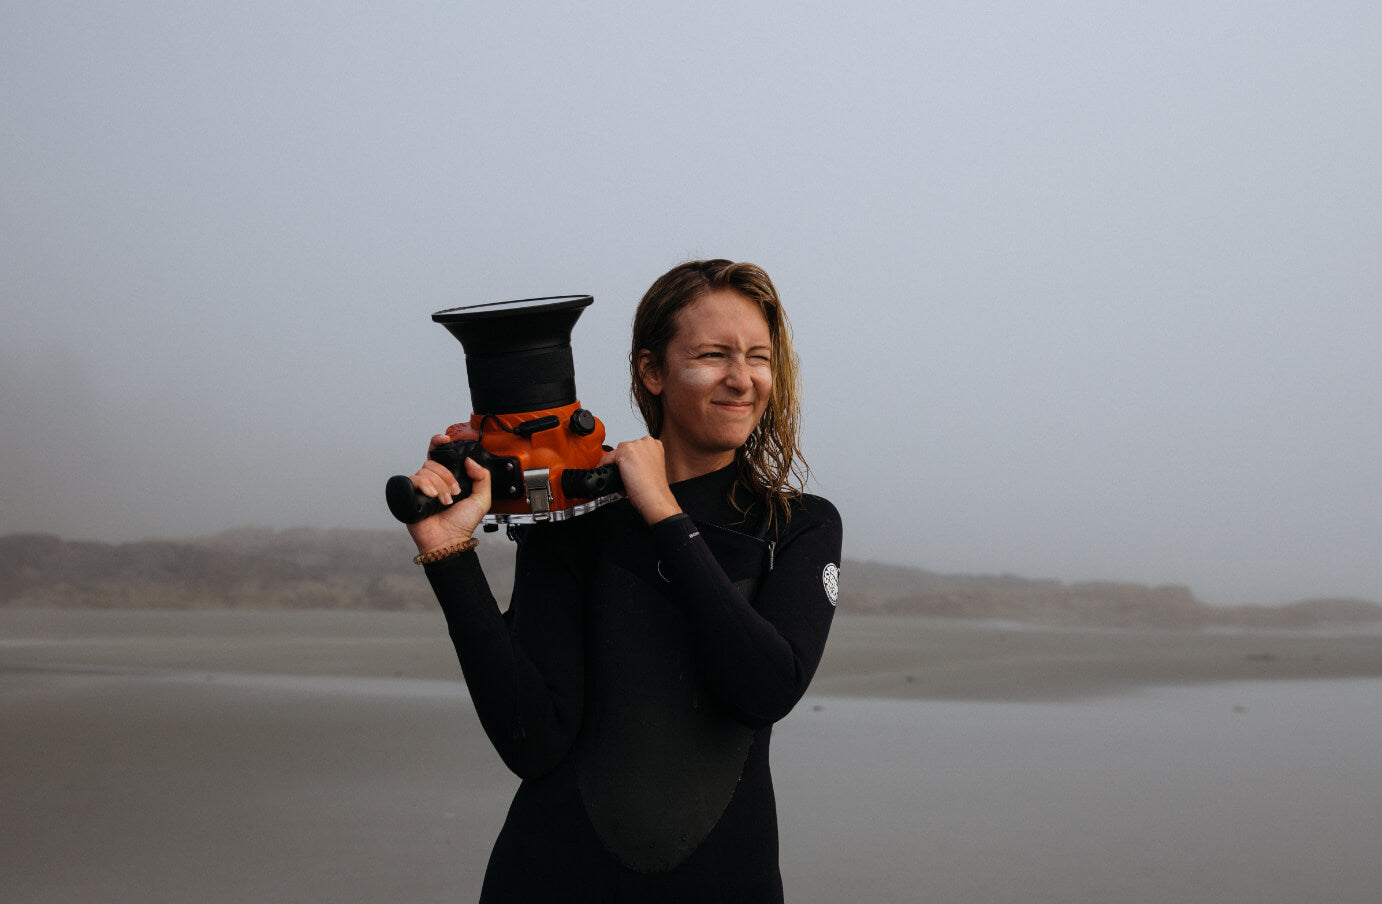 Johnie Gall in a wetsuit on the beach holding a camera